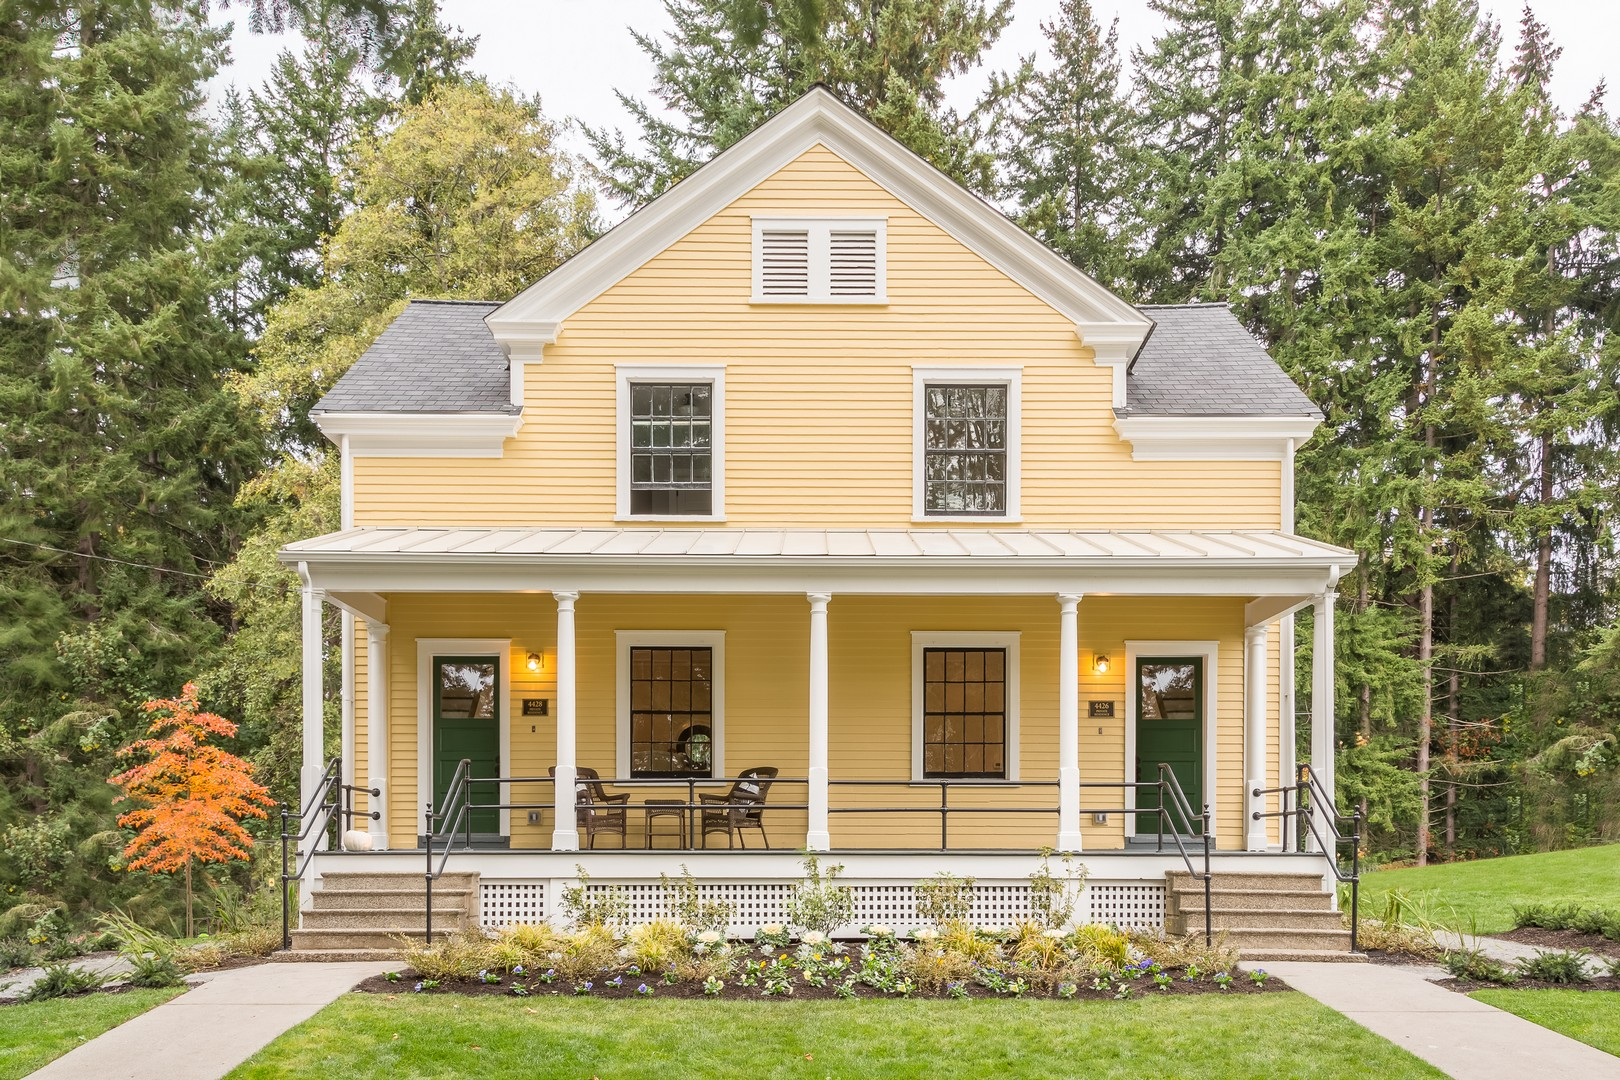 Single Family Home for Sale at The Homes at Fort Lawton in Discovery Park 4426 Montana Circle Seattle, Washington 98199 United States